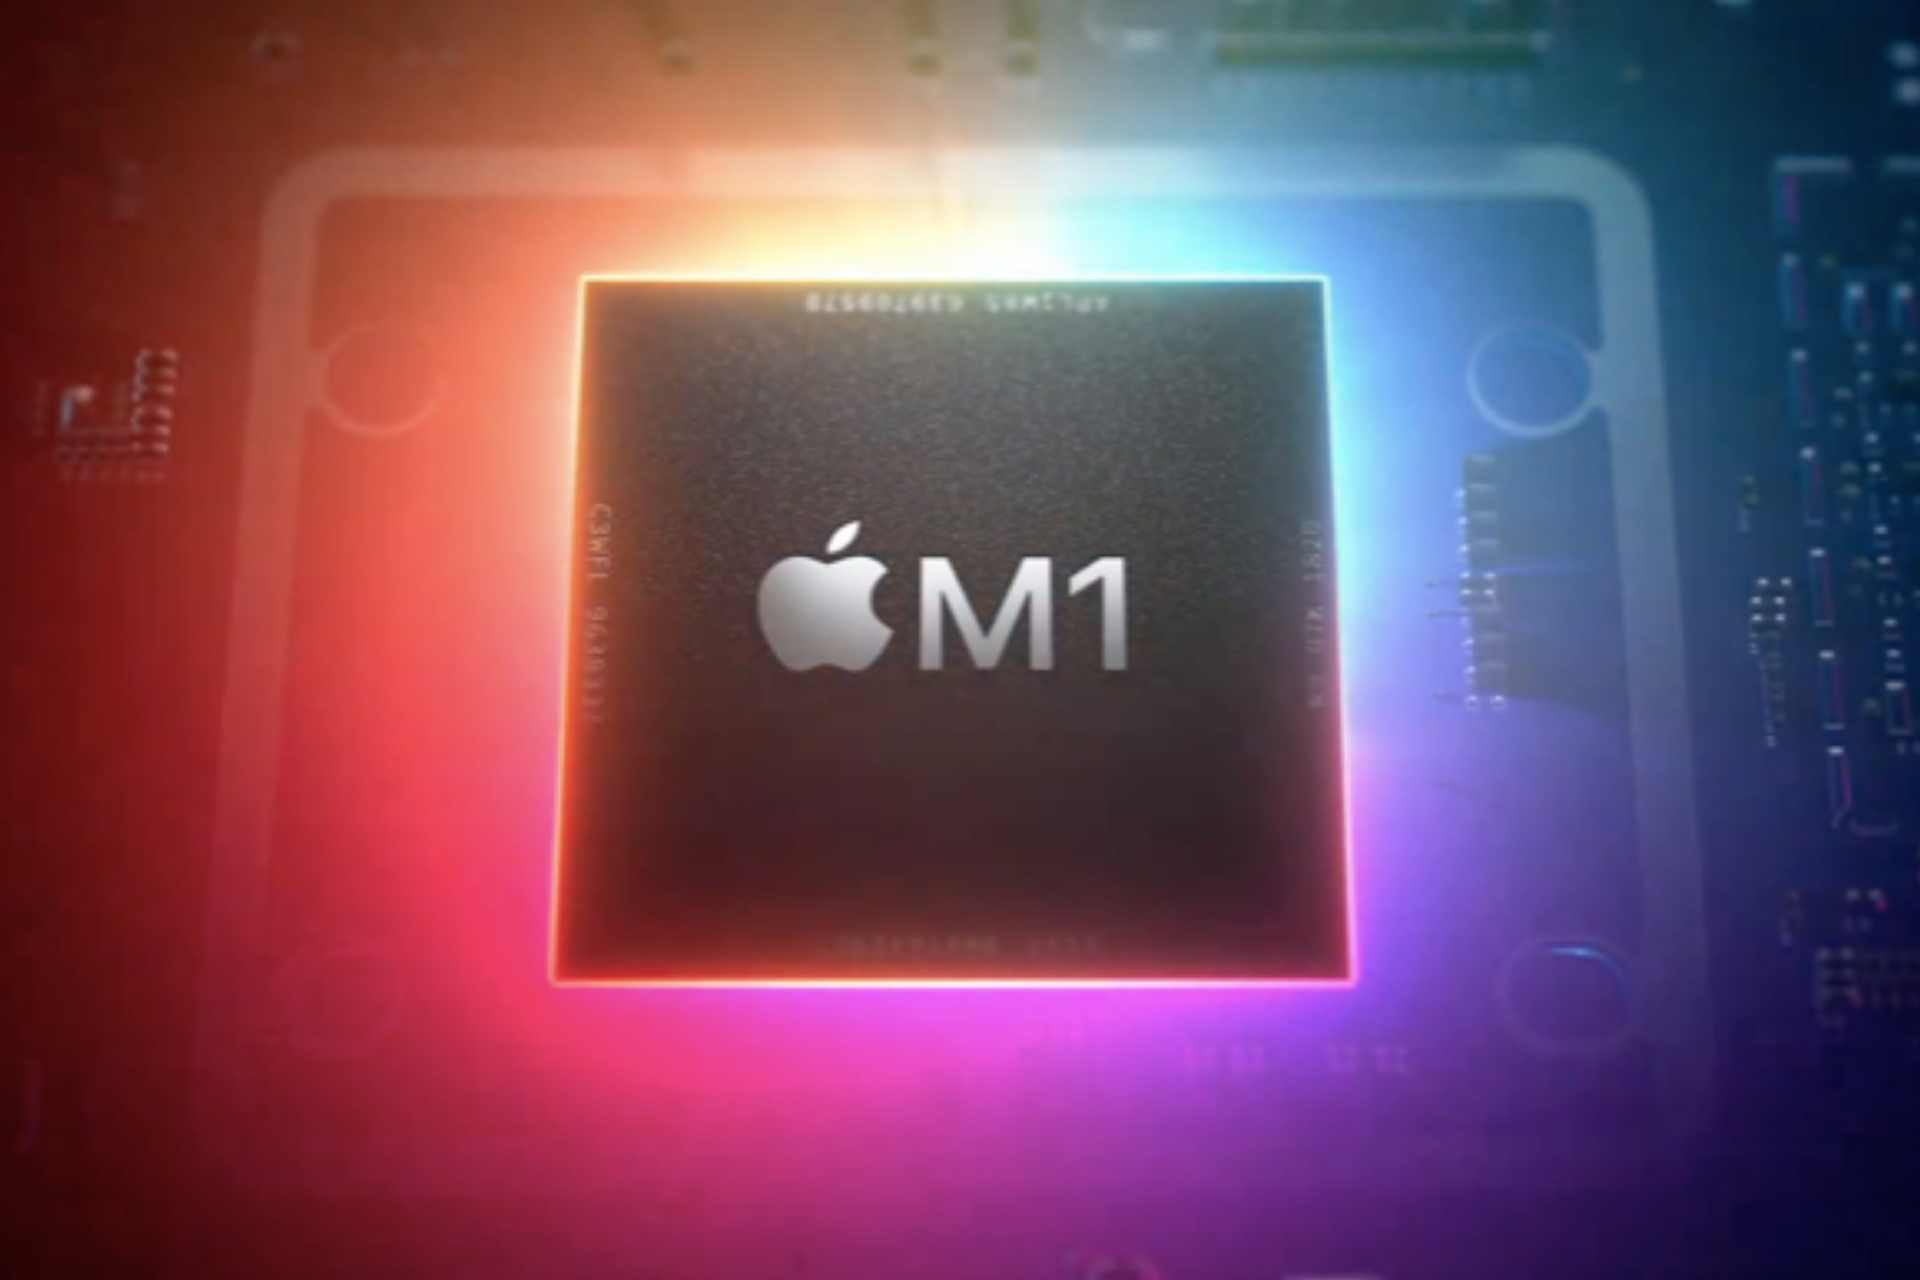 M1 chipset with ARM technology was introduced by Apple in November 10th, 2020